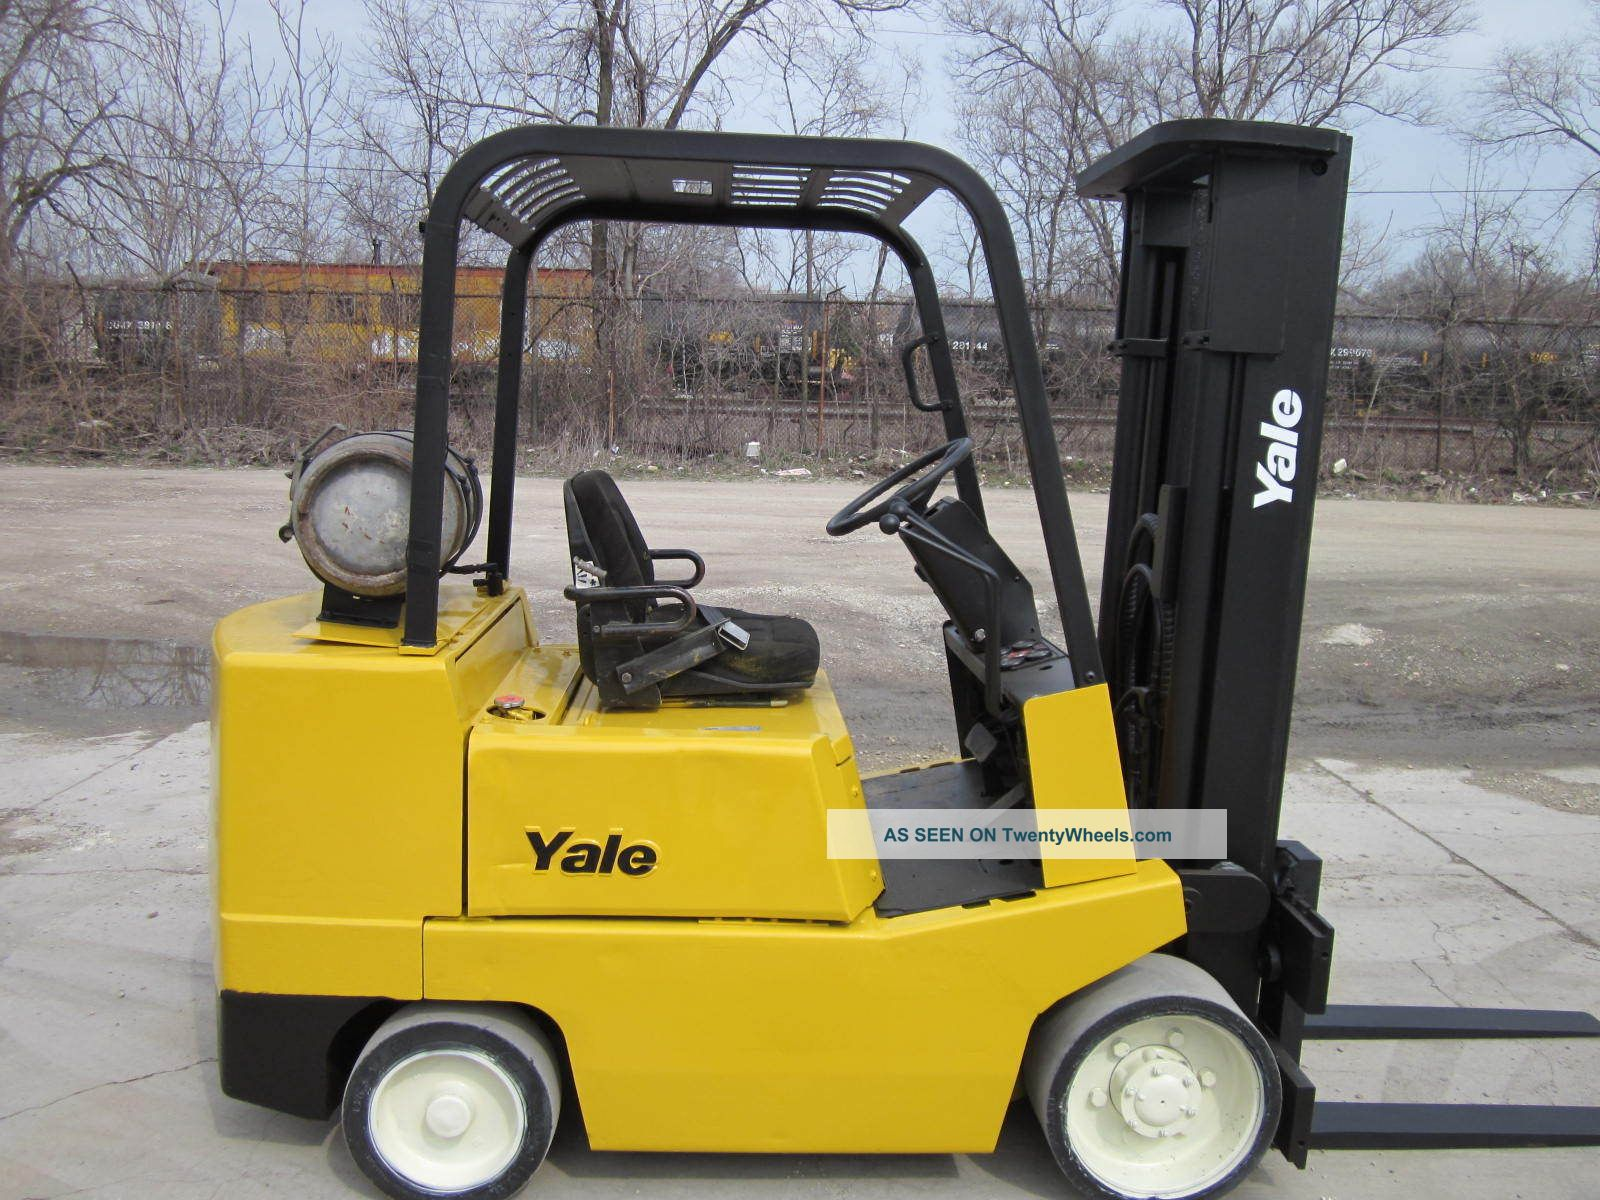 Yale Glc060 Forklift Lift Truck Hilo 6,  000lbs Hyster Forklifts & Other Lifts photo